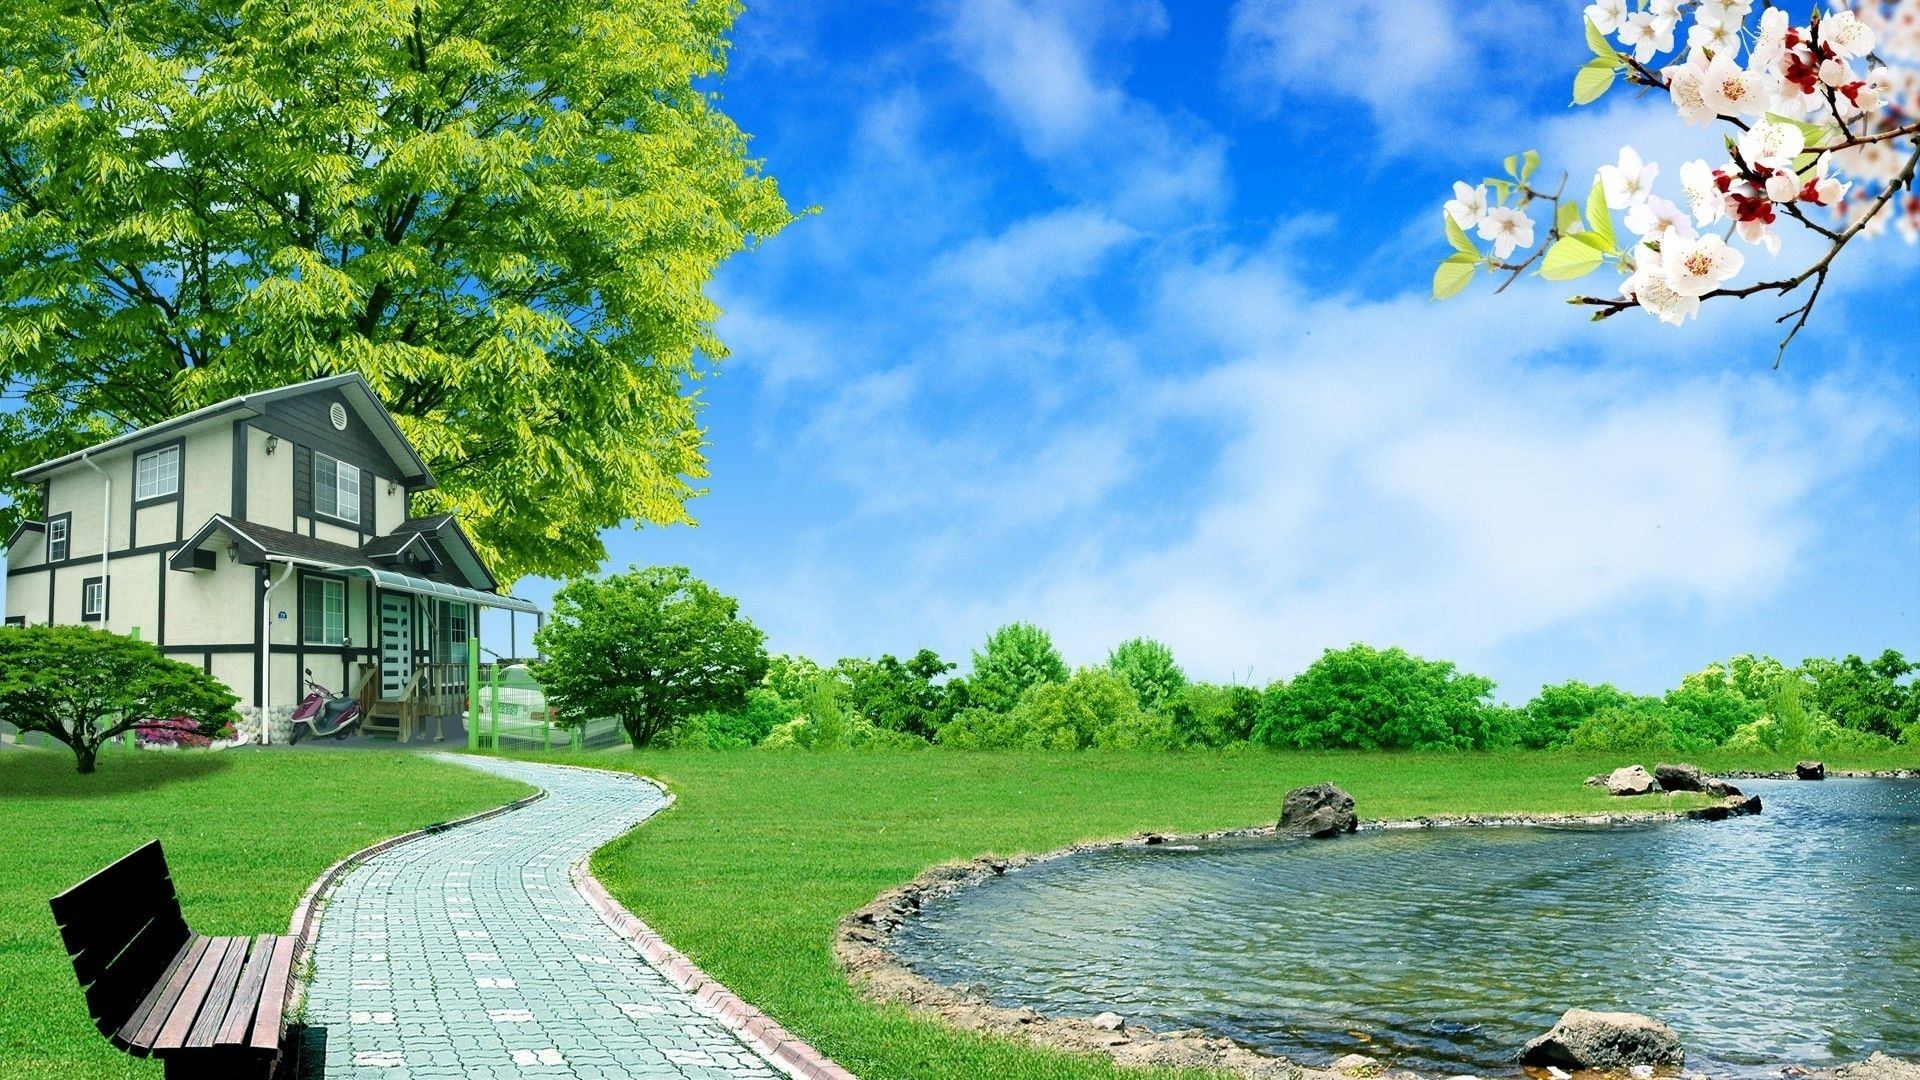 3d wallpapers hd nature: find best latest 3d wallpapers hd nature in